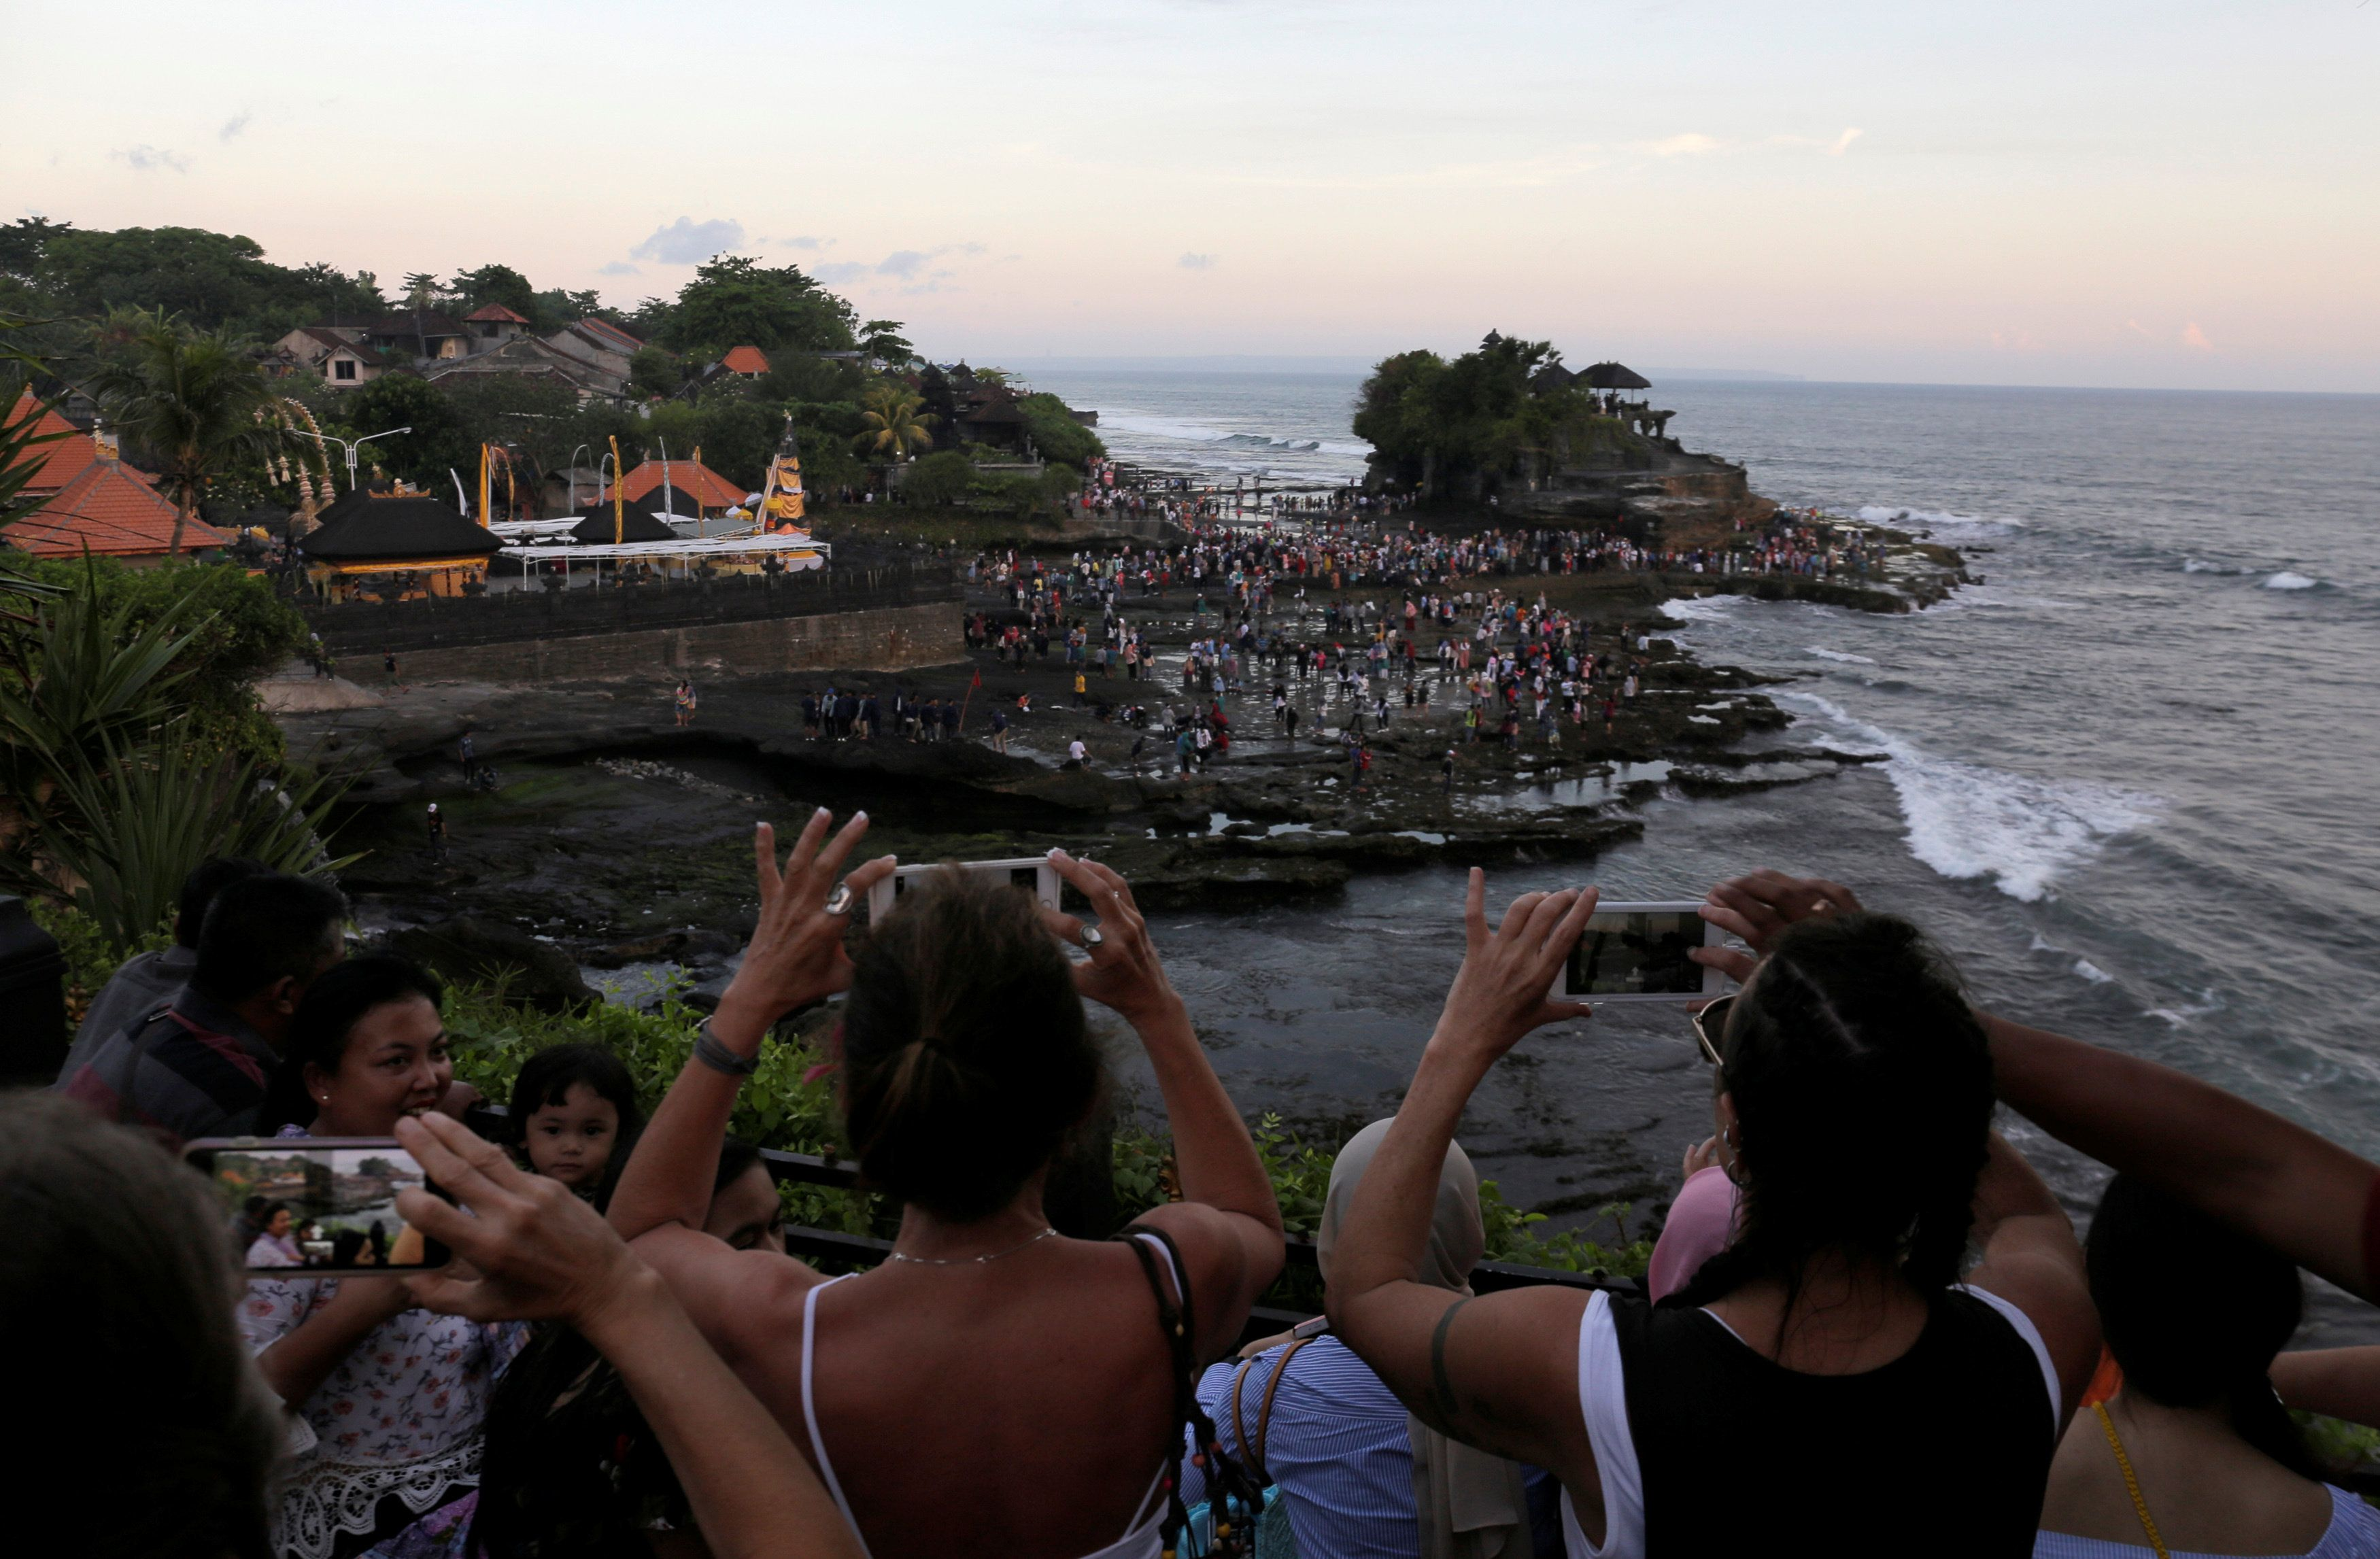 Tourists take pictures of the Hindu temple Tanah Lot (R) in Tabanan, on the resort island of Bali, Indonesia May 6, 2018.  REUTERS/Johannes P. Christo